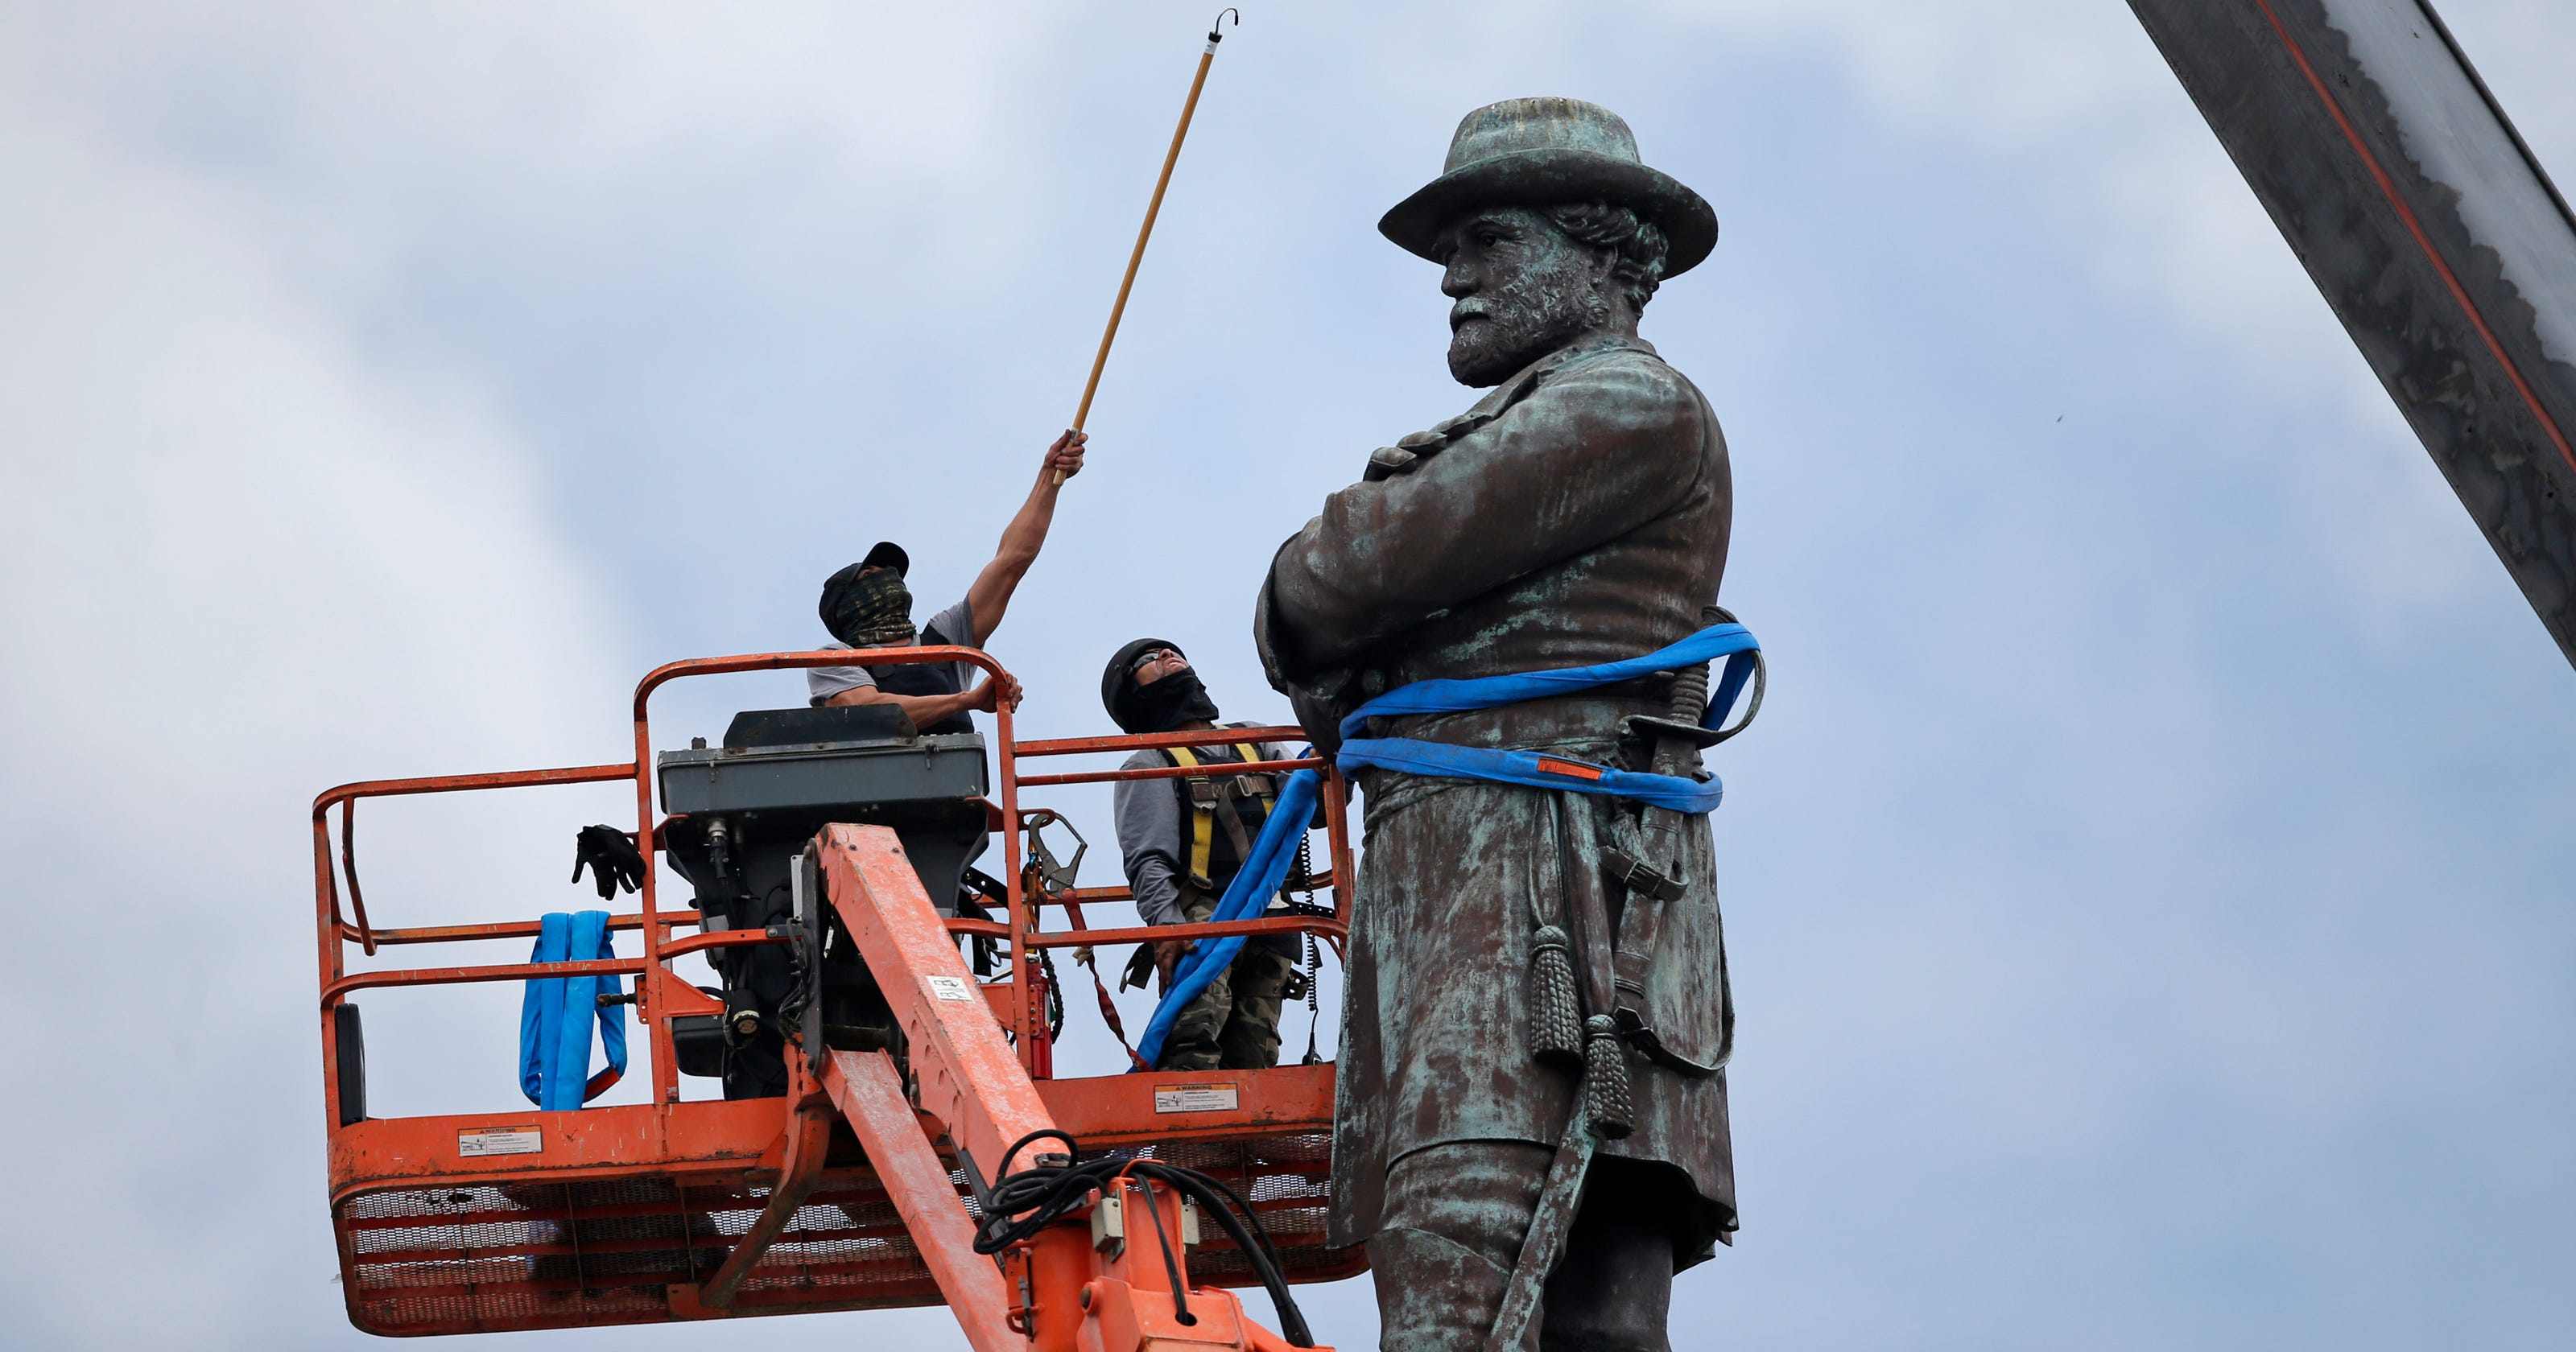 Confederate statue removal in Alabama: How much would it cost?